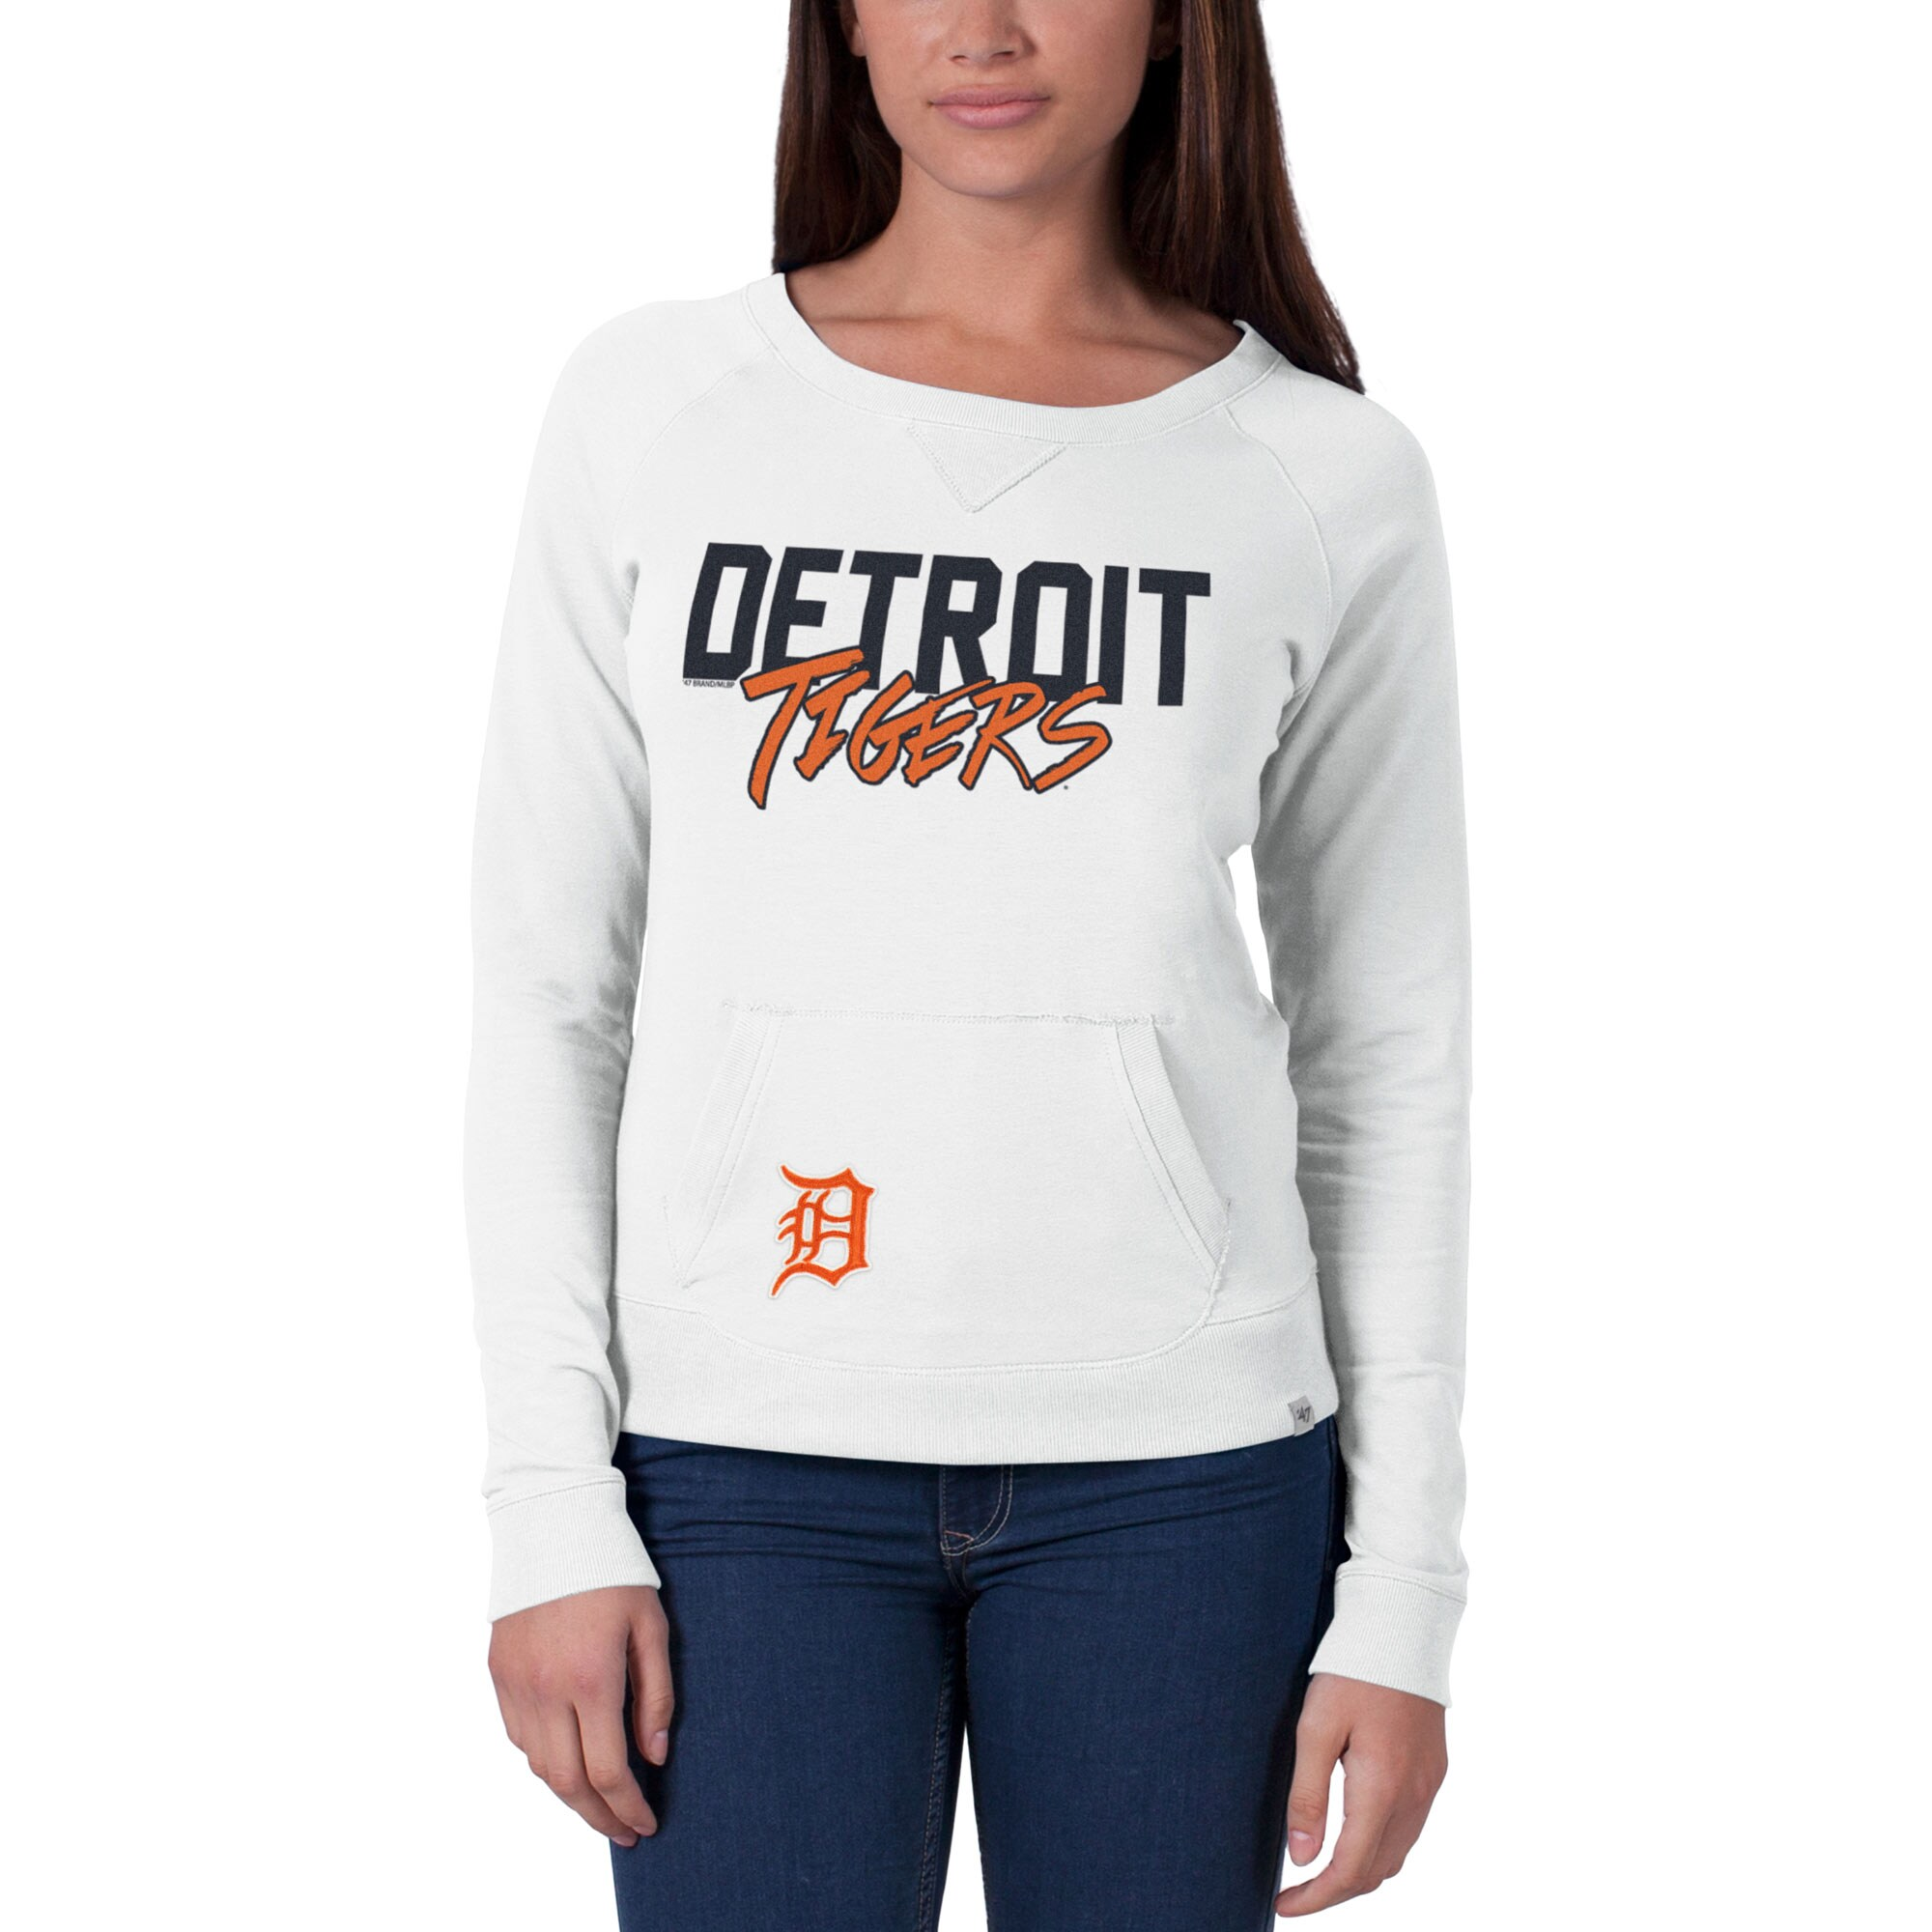 Detroit Tigers '47 Women's Gameday Crew Neck Sweater - White